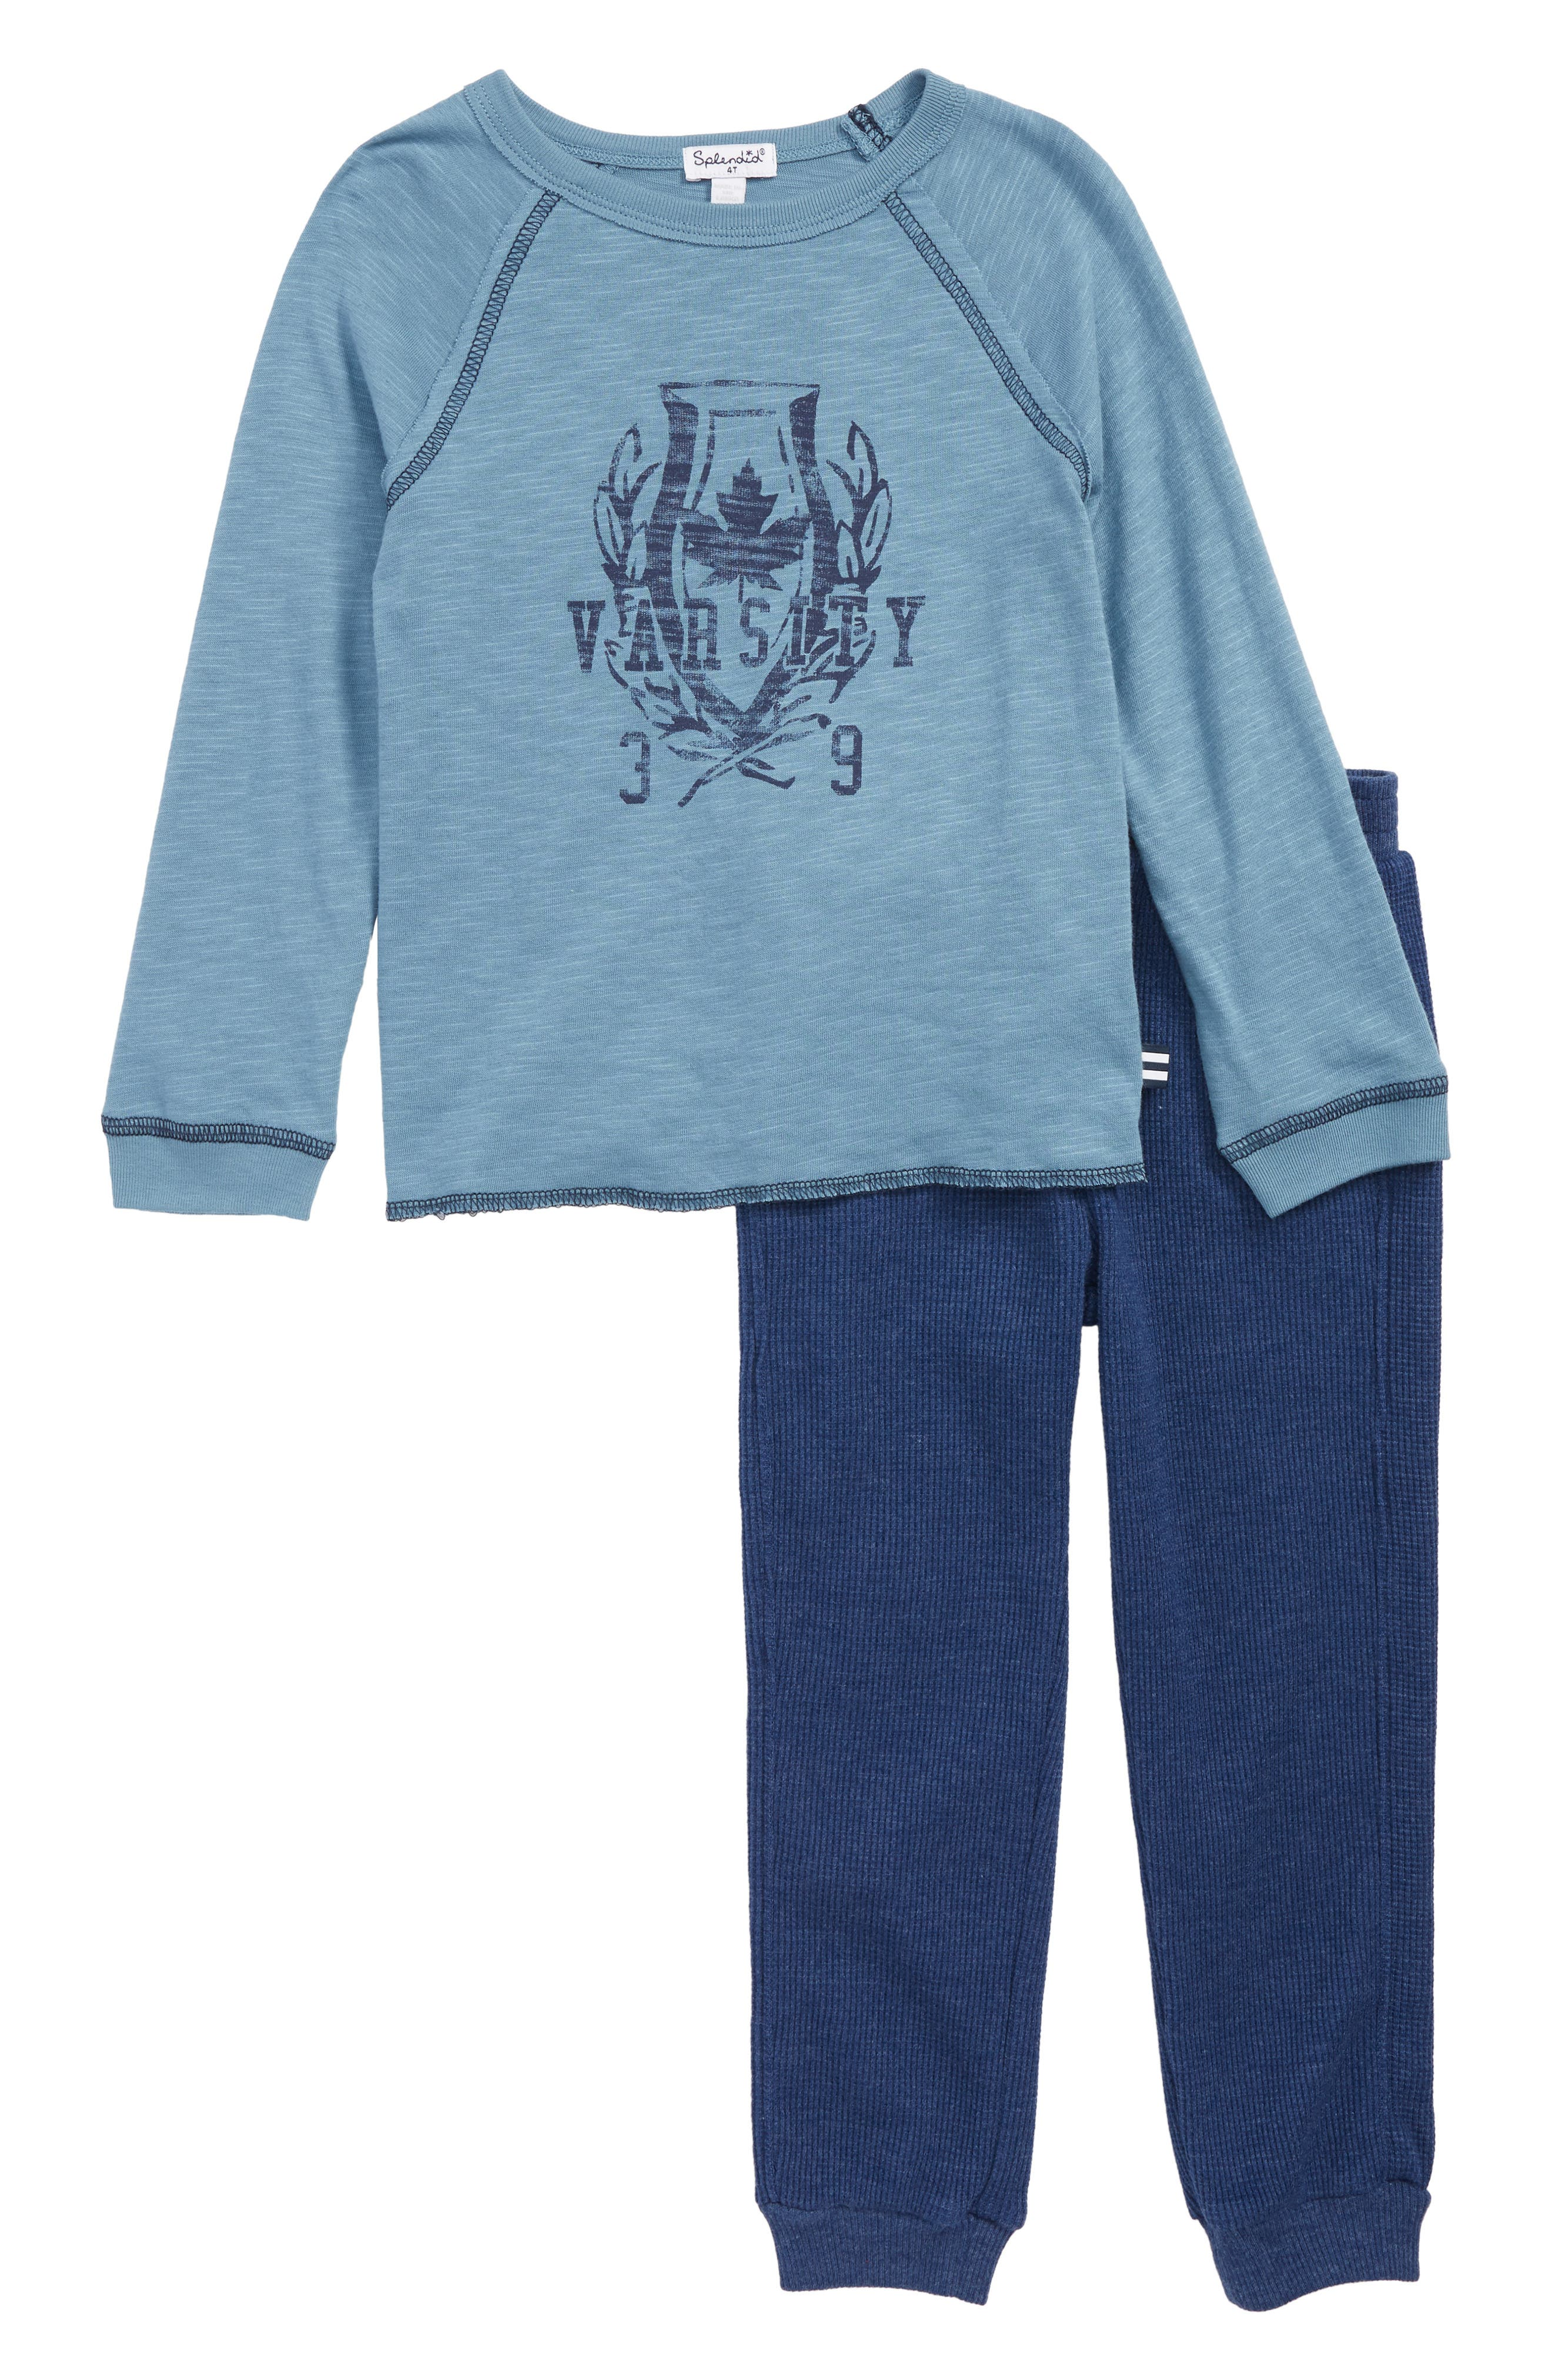 SPLENDID,                             Raglan Shirt & Jogger Pants Set,                             Main thumbnail 1, color,                             420